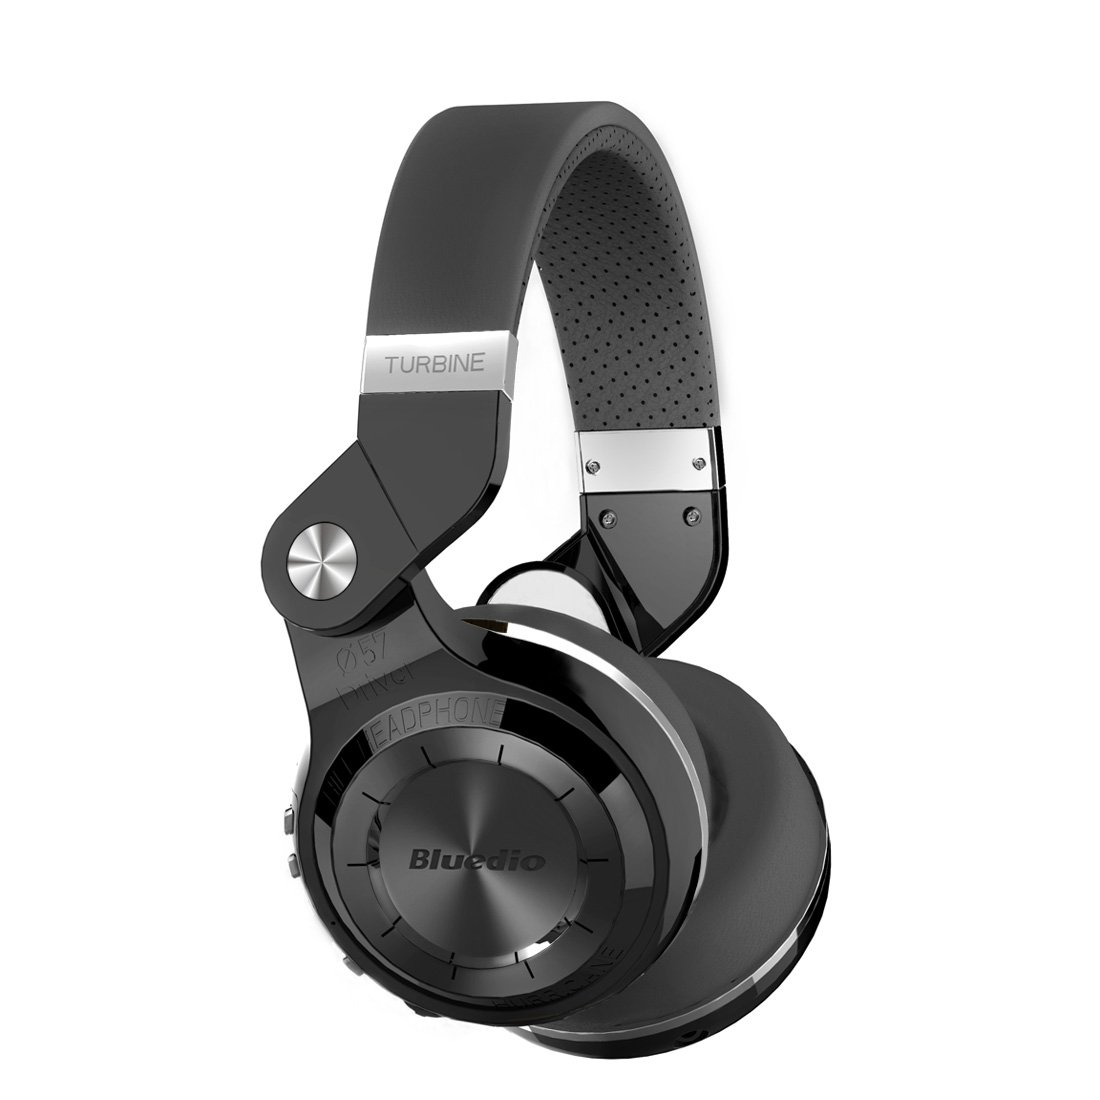 Bluedio Turbine T2s Wireless Bluetooth Headphones with Mic, 57mm Drivers/Rotary Folding (Black)